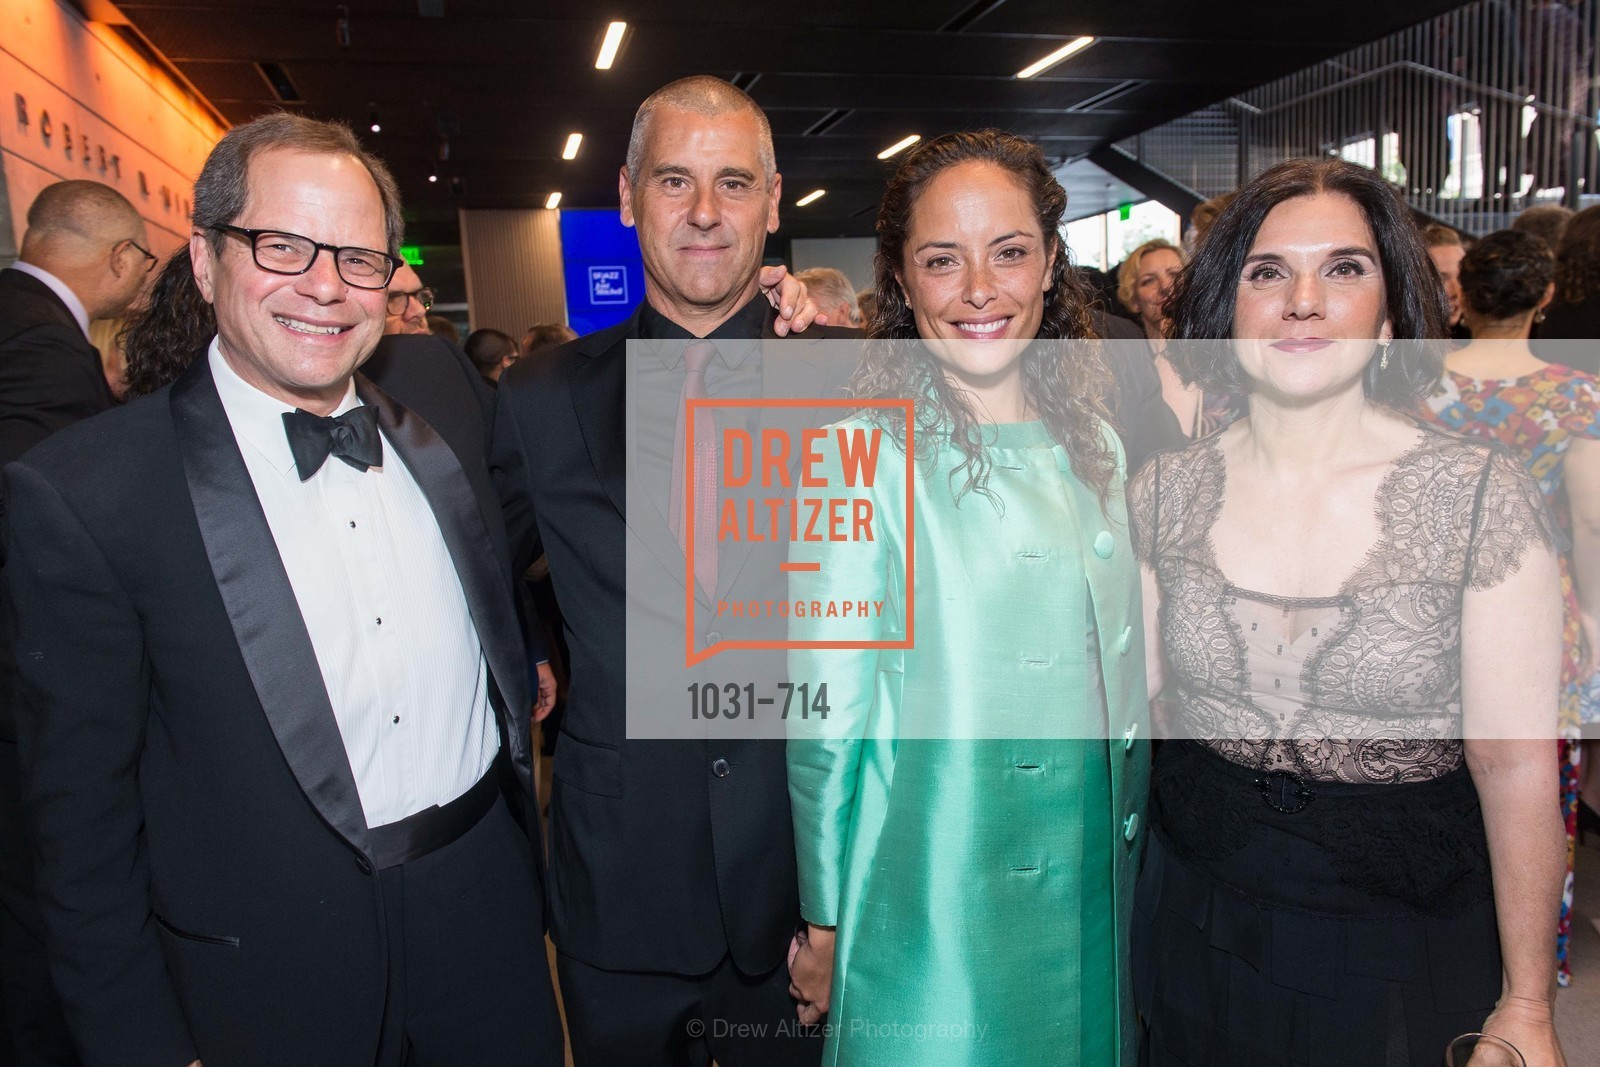 Randall Kline, Sando Birk, Elyse Bignolet, Teresa Pantaleo, SFJAZZ Gala 2015 Honors Joni Mitchell with Lifetime Achievement Award, US, May 8th, 2015,Drew Altizer, Drew Altizer Photography, full-service agency, private events, San Francisco photographer, photographer california